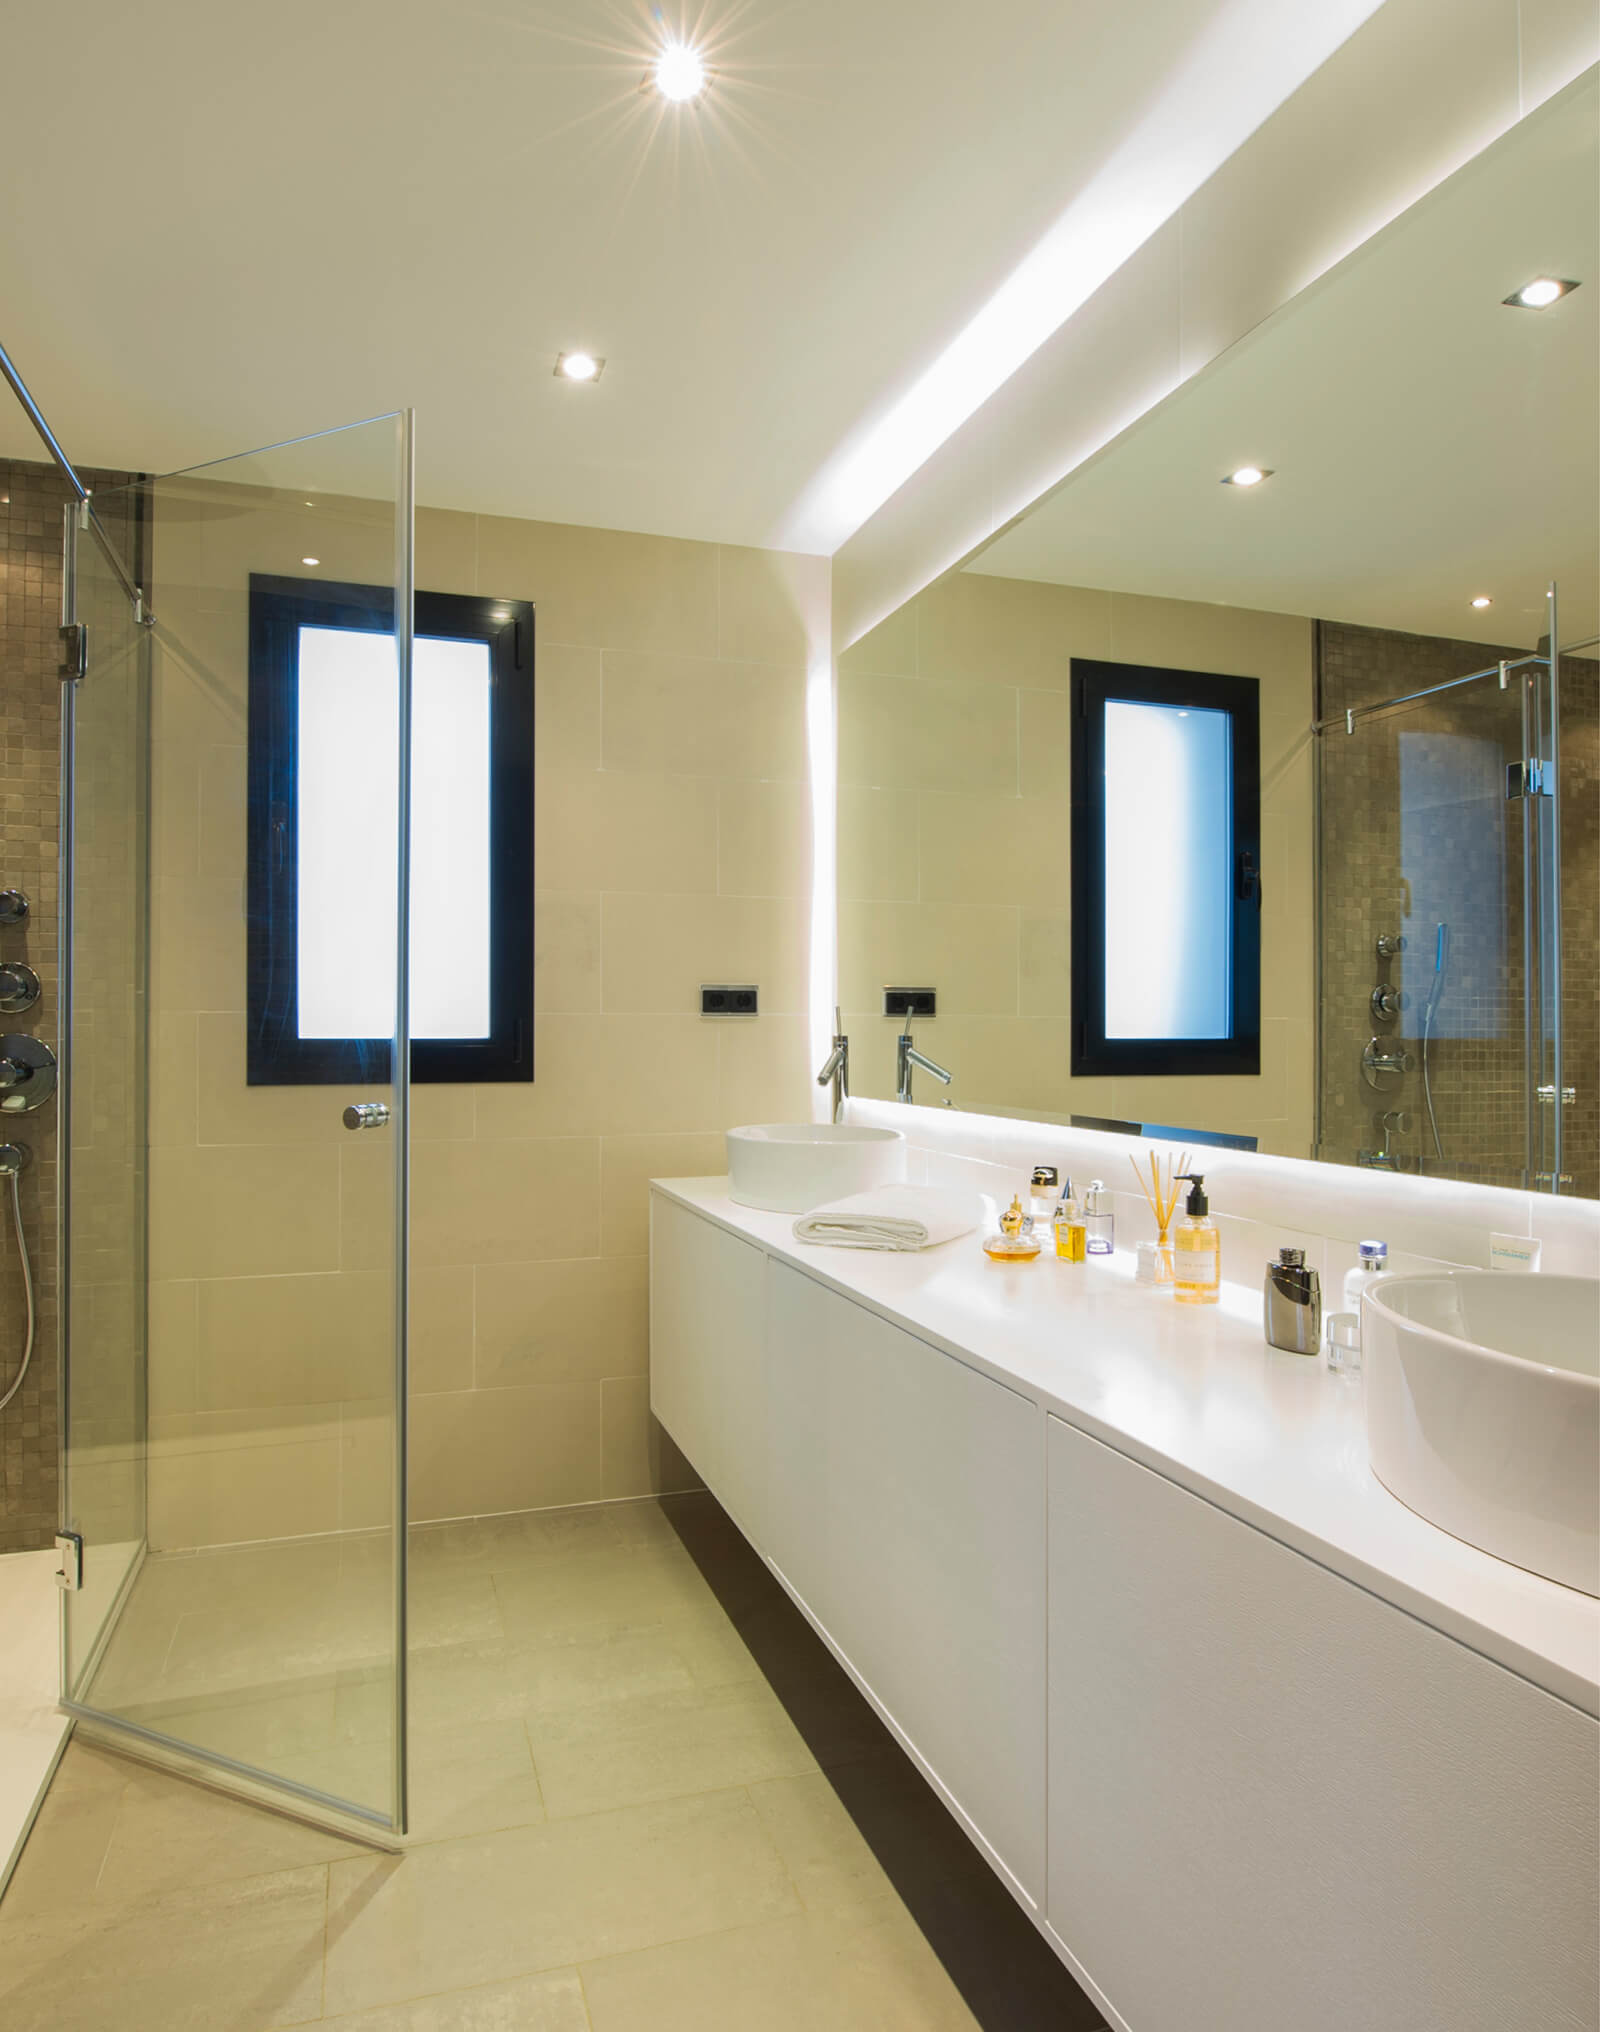 Contemporary Colonial Style Villa bathroom